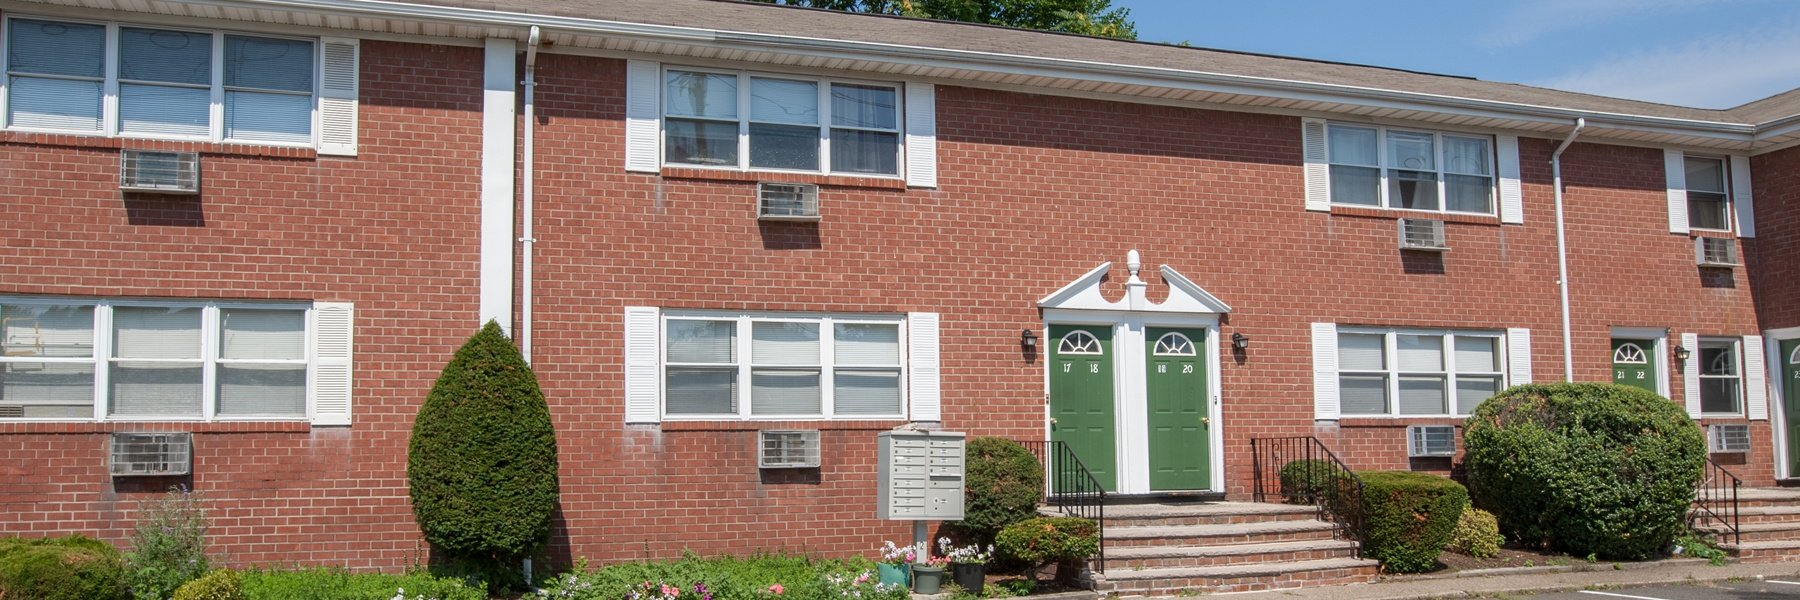 Dahnert Park Apartments For Rent in Garfield, NJ Building View